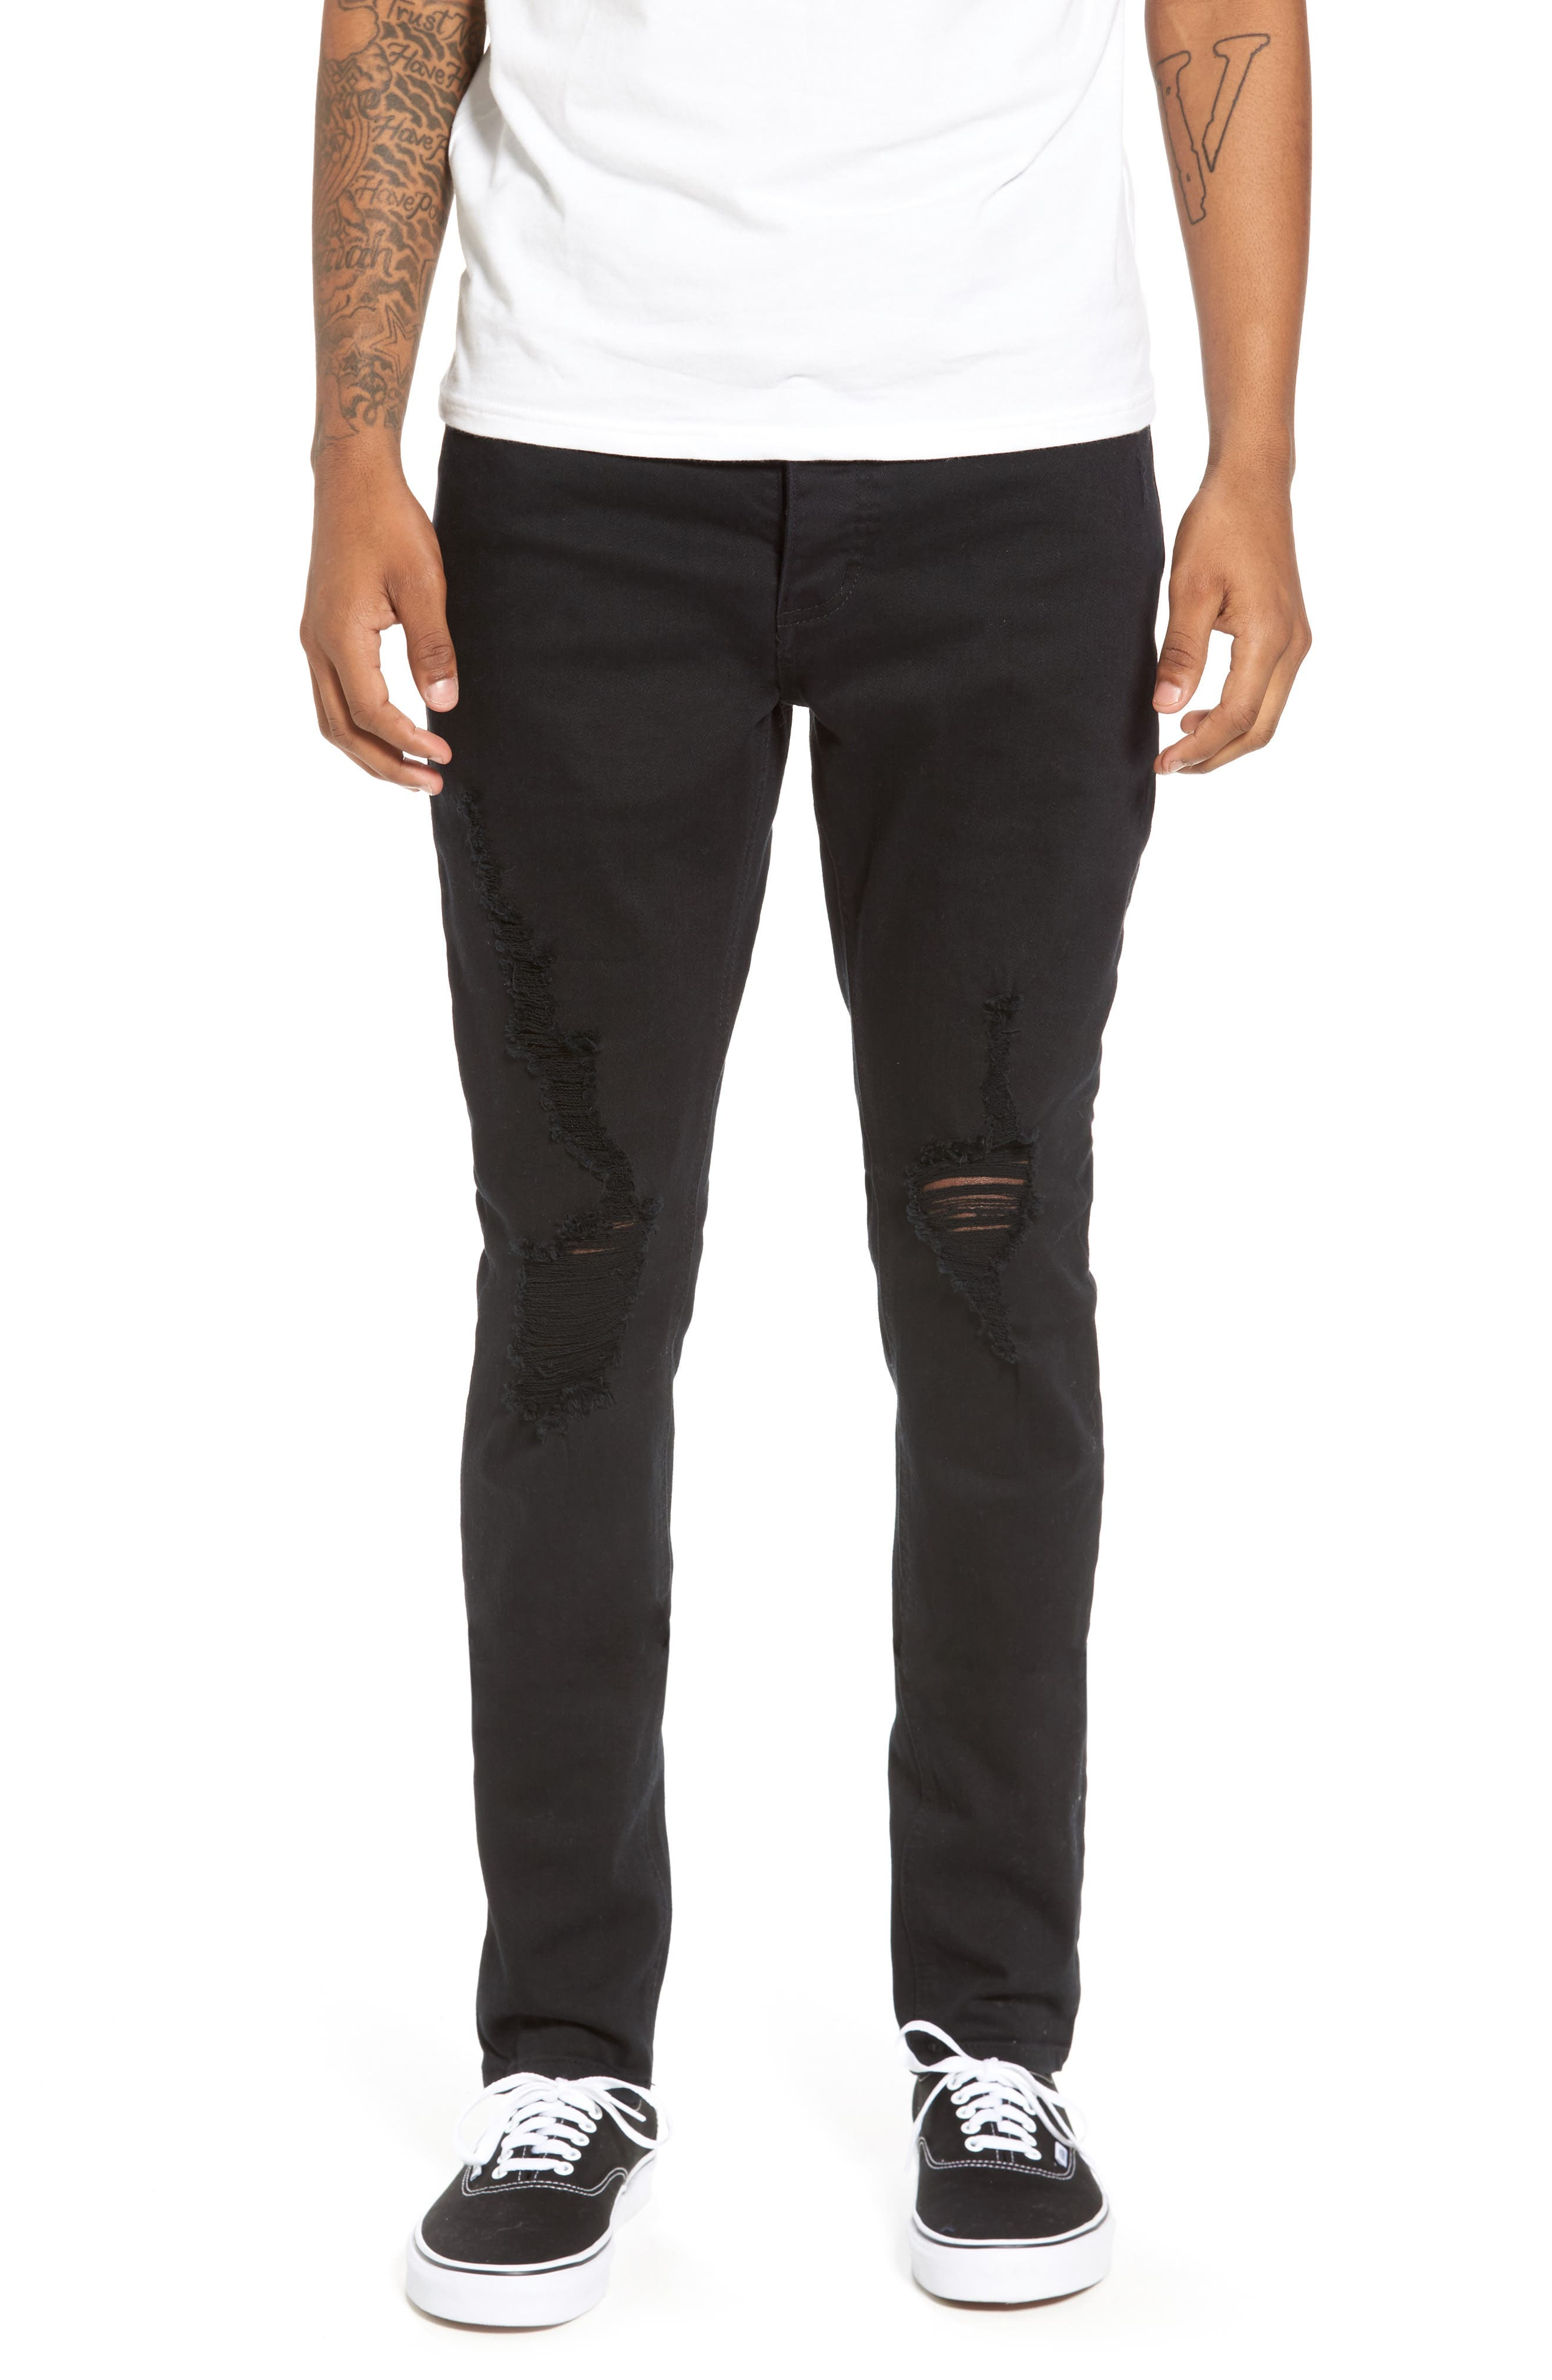 Joe Blow Destroyed Denim Jeans,                         Main,                         color, 001